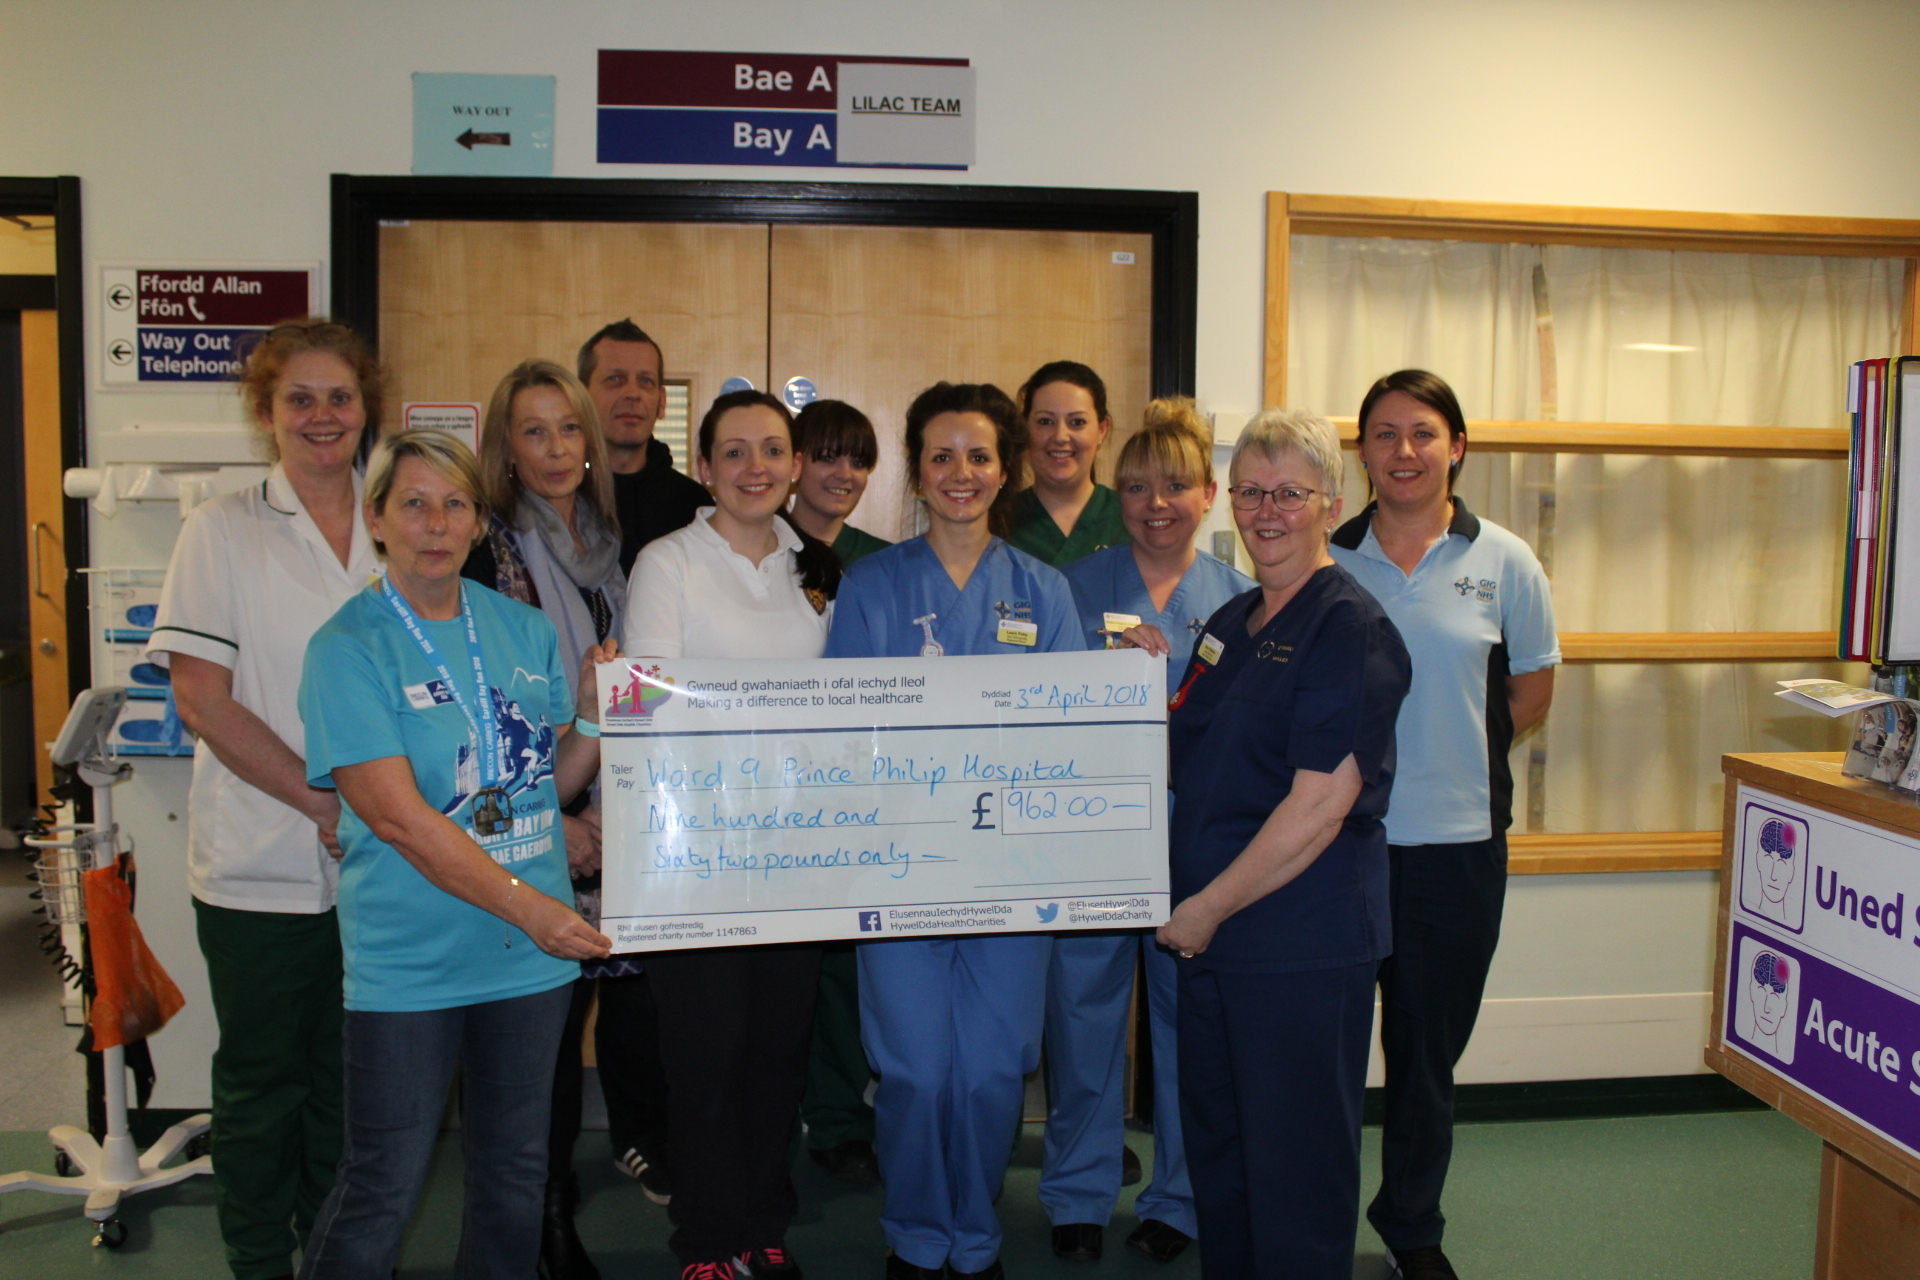 Pictured are Gaynor Davies, Karen Flint and Andrew Flint presenting a cheque to Sister Ann Robins and the team at ward 9.